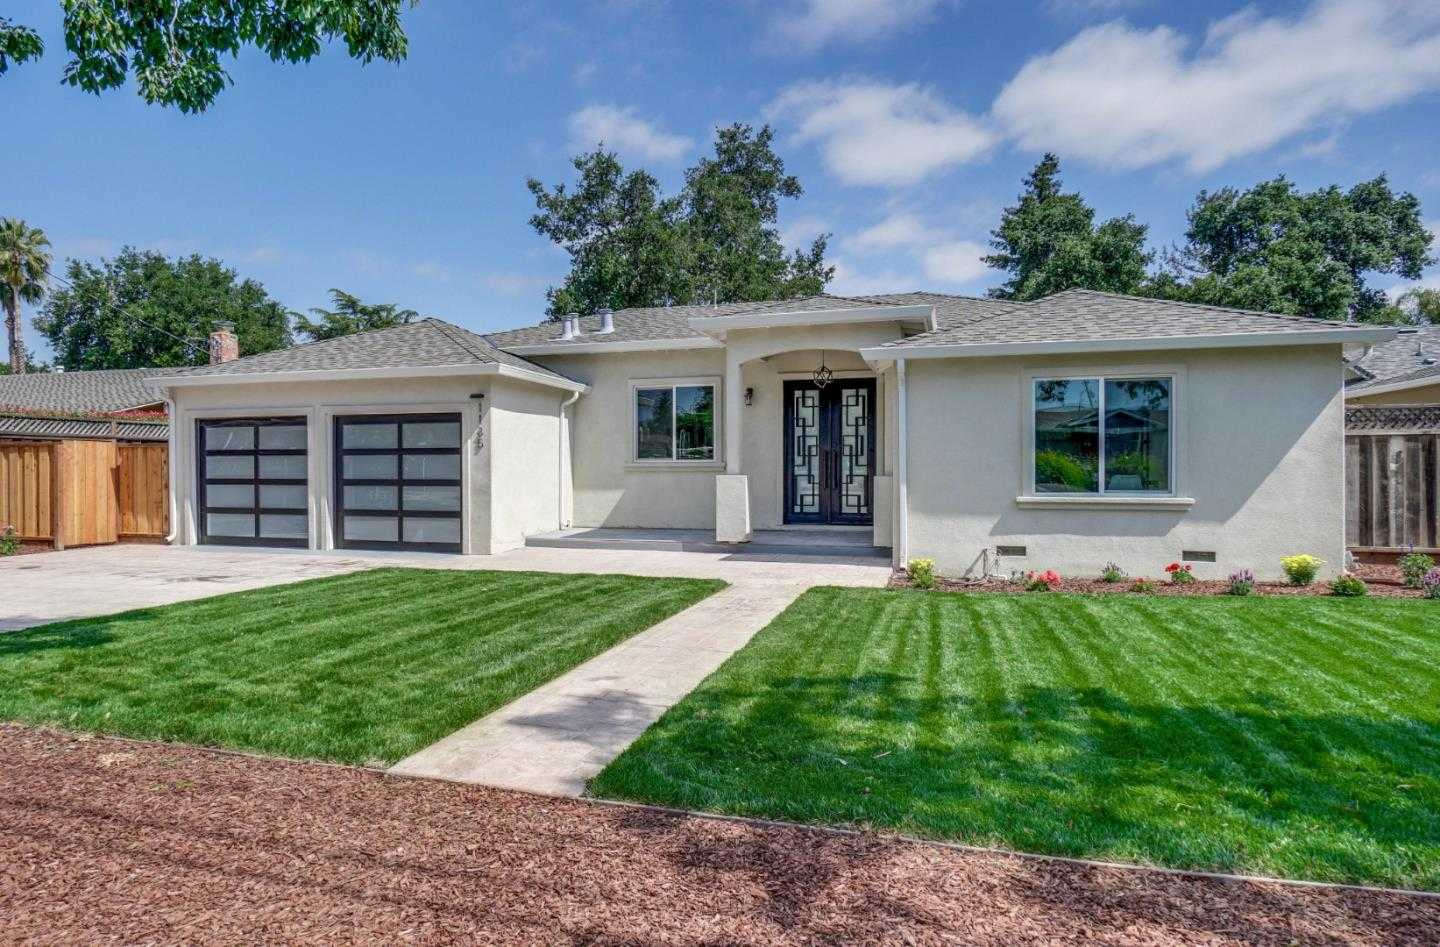 $2,188,000 - 5Br/4Ba -  for Sale in Campbell